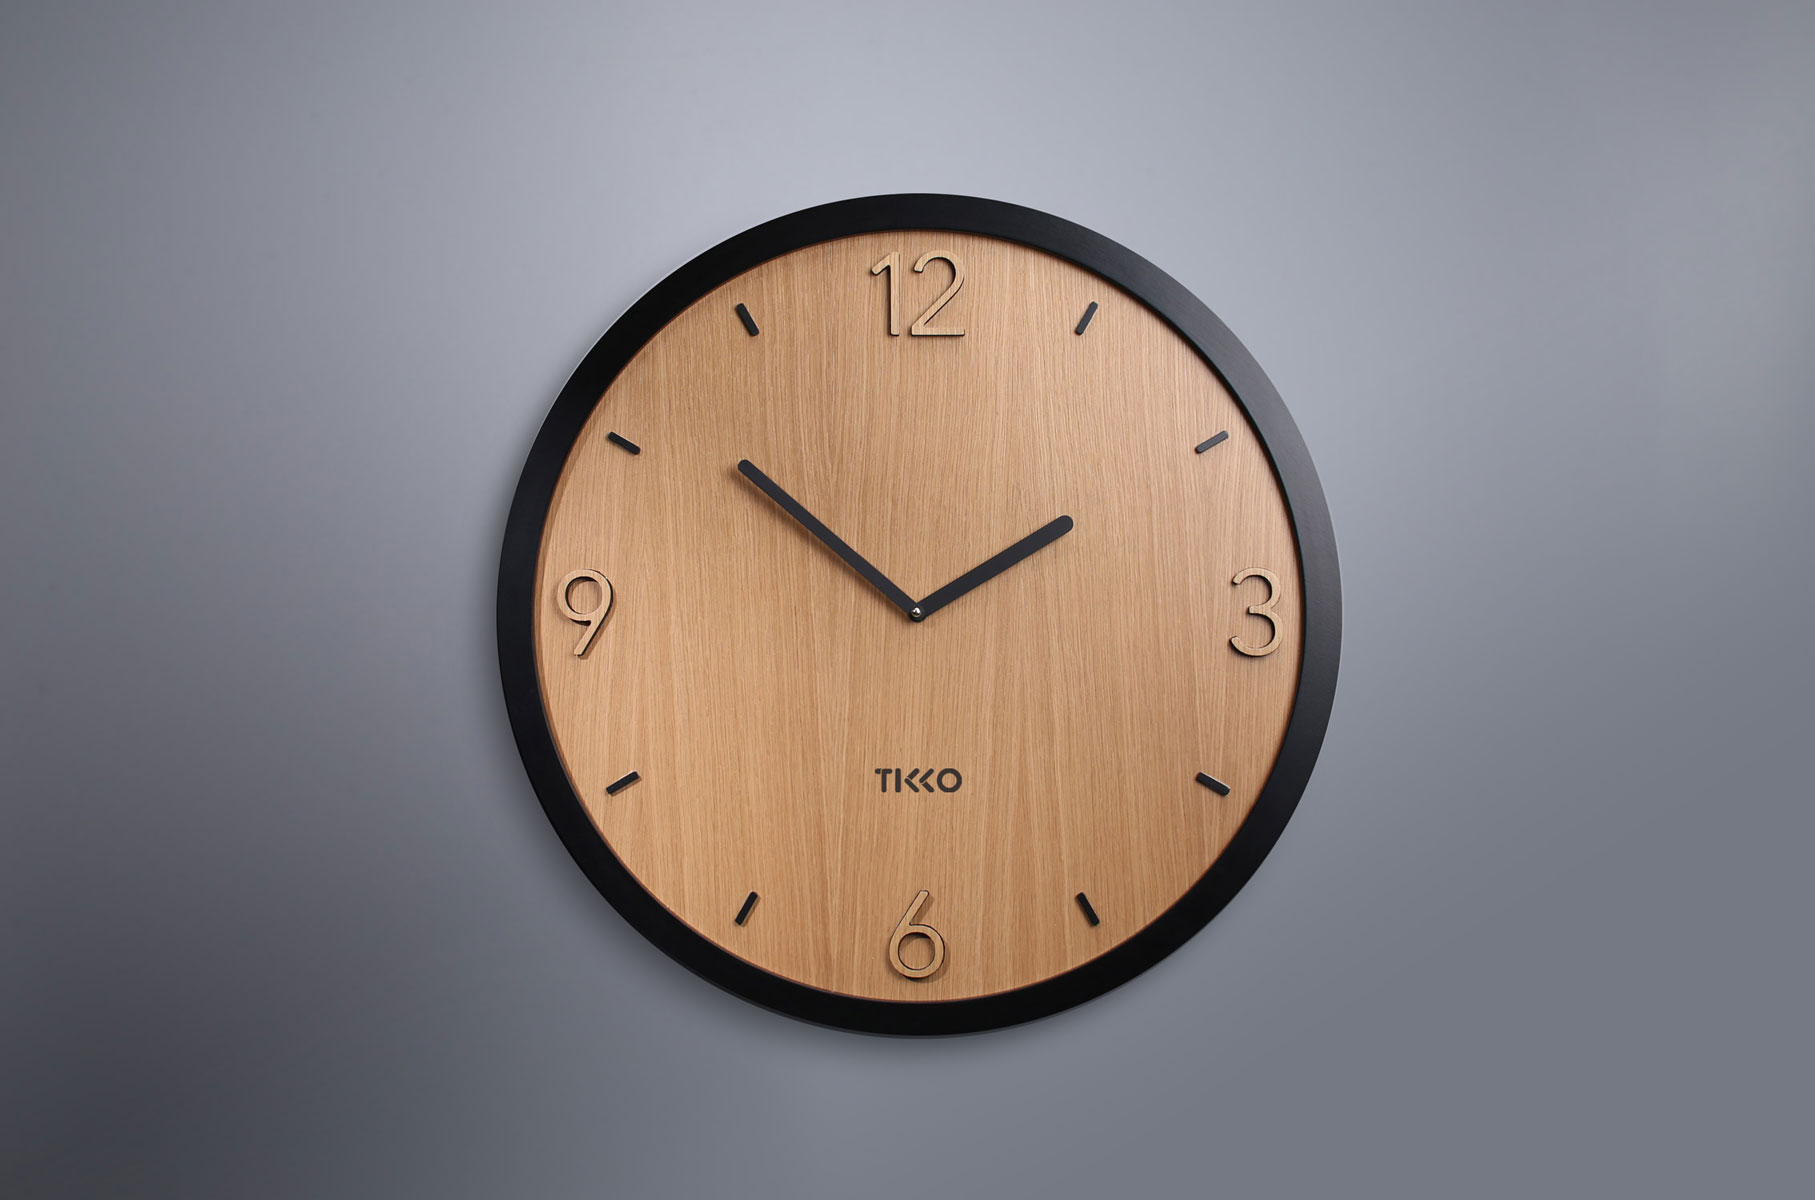 Modern tikko wall clock wood wooden